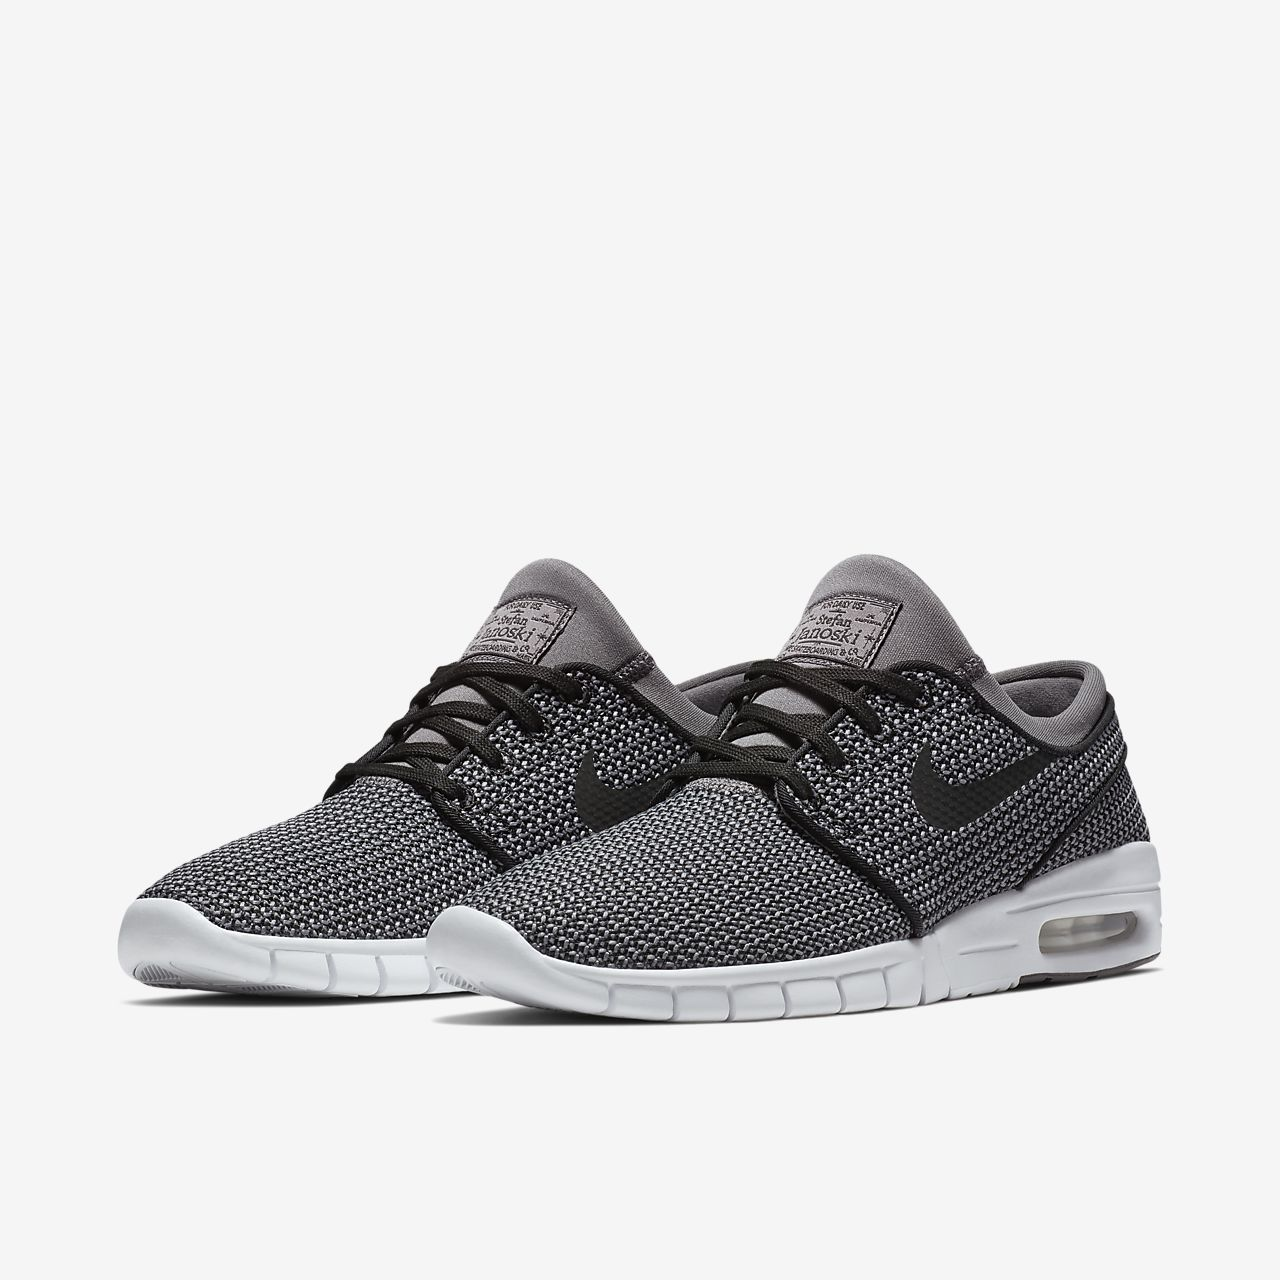 High Quality Nike Stefan Janoski Max - Black / Anthracite Shop No.60452040